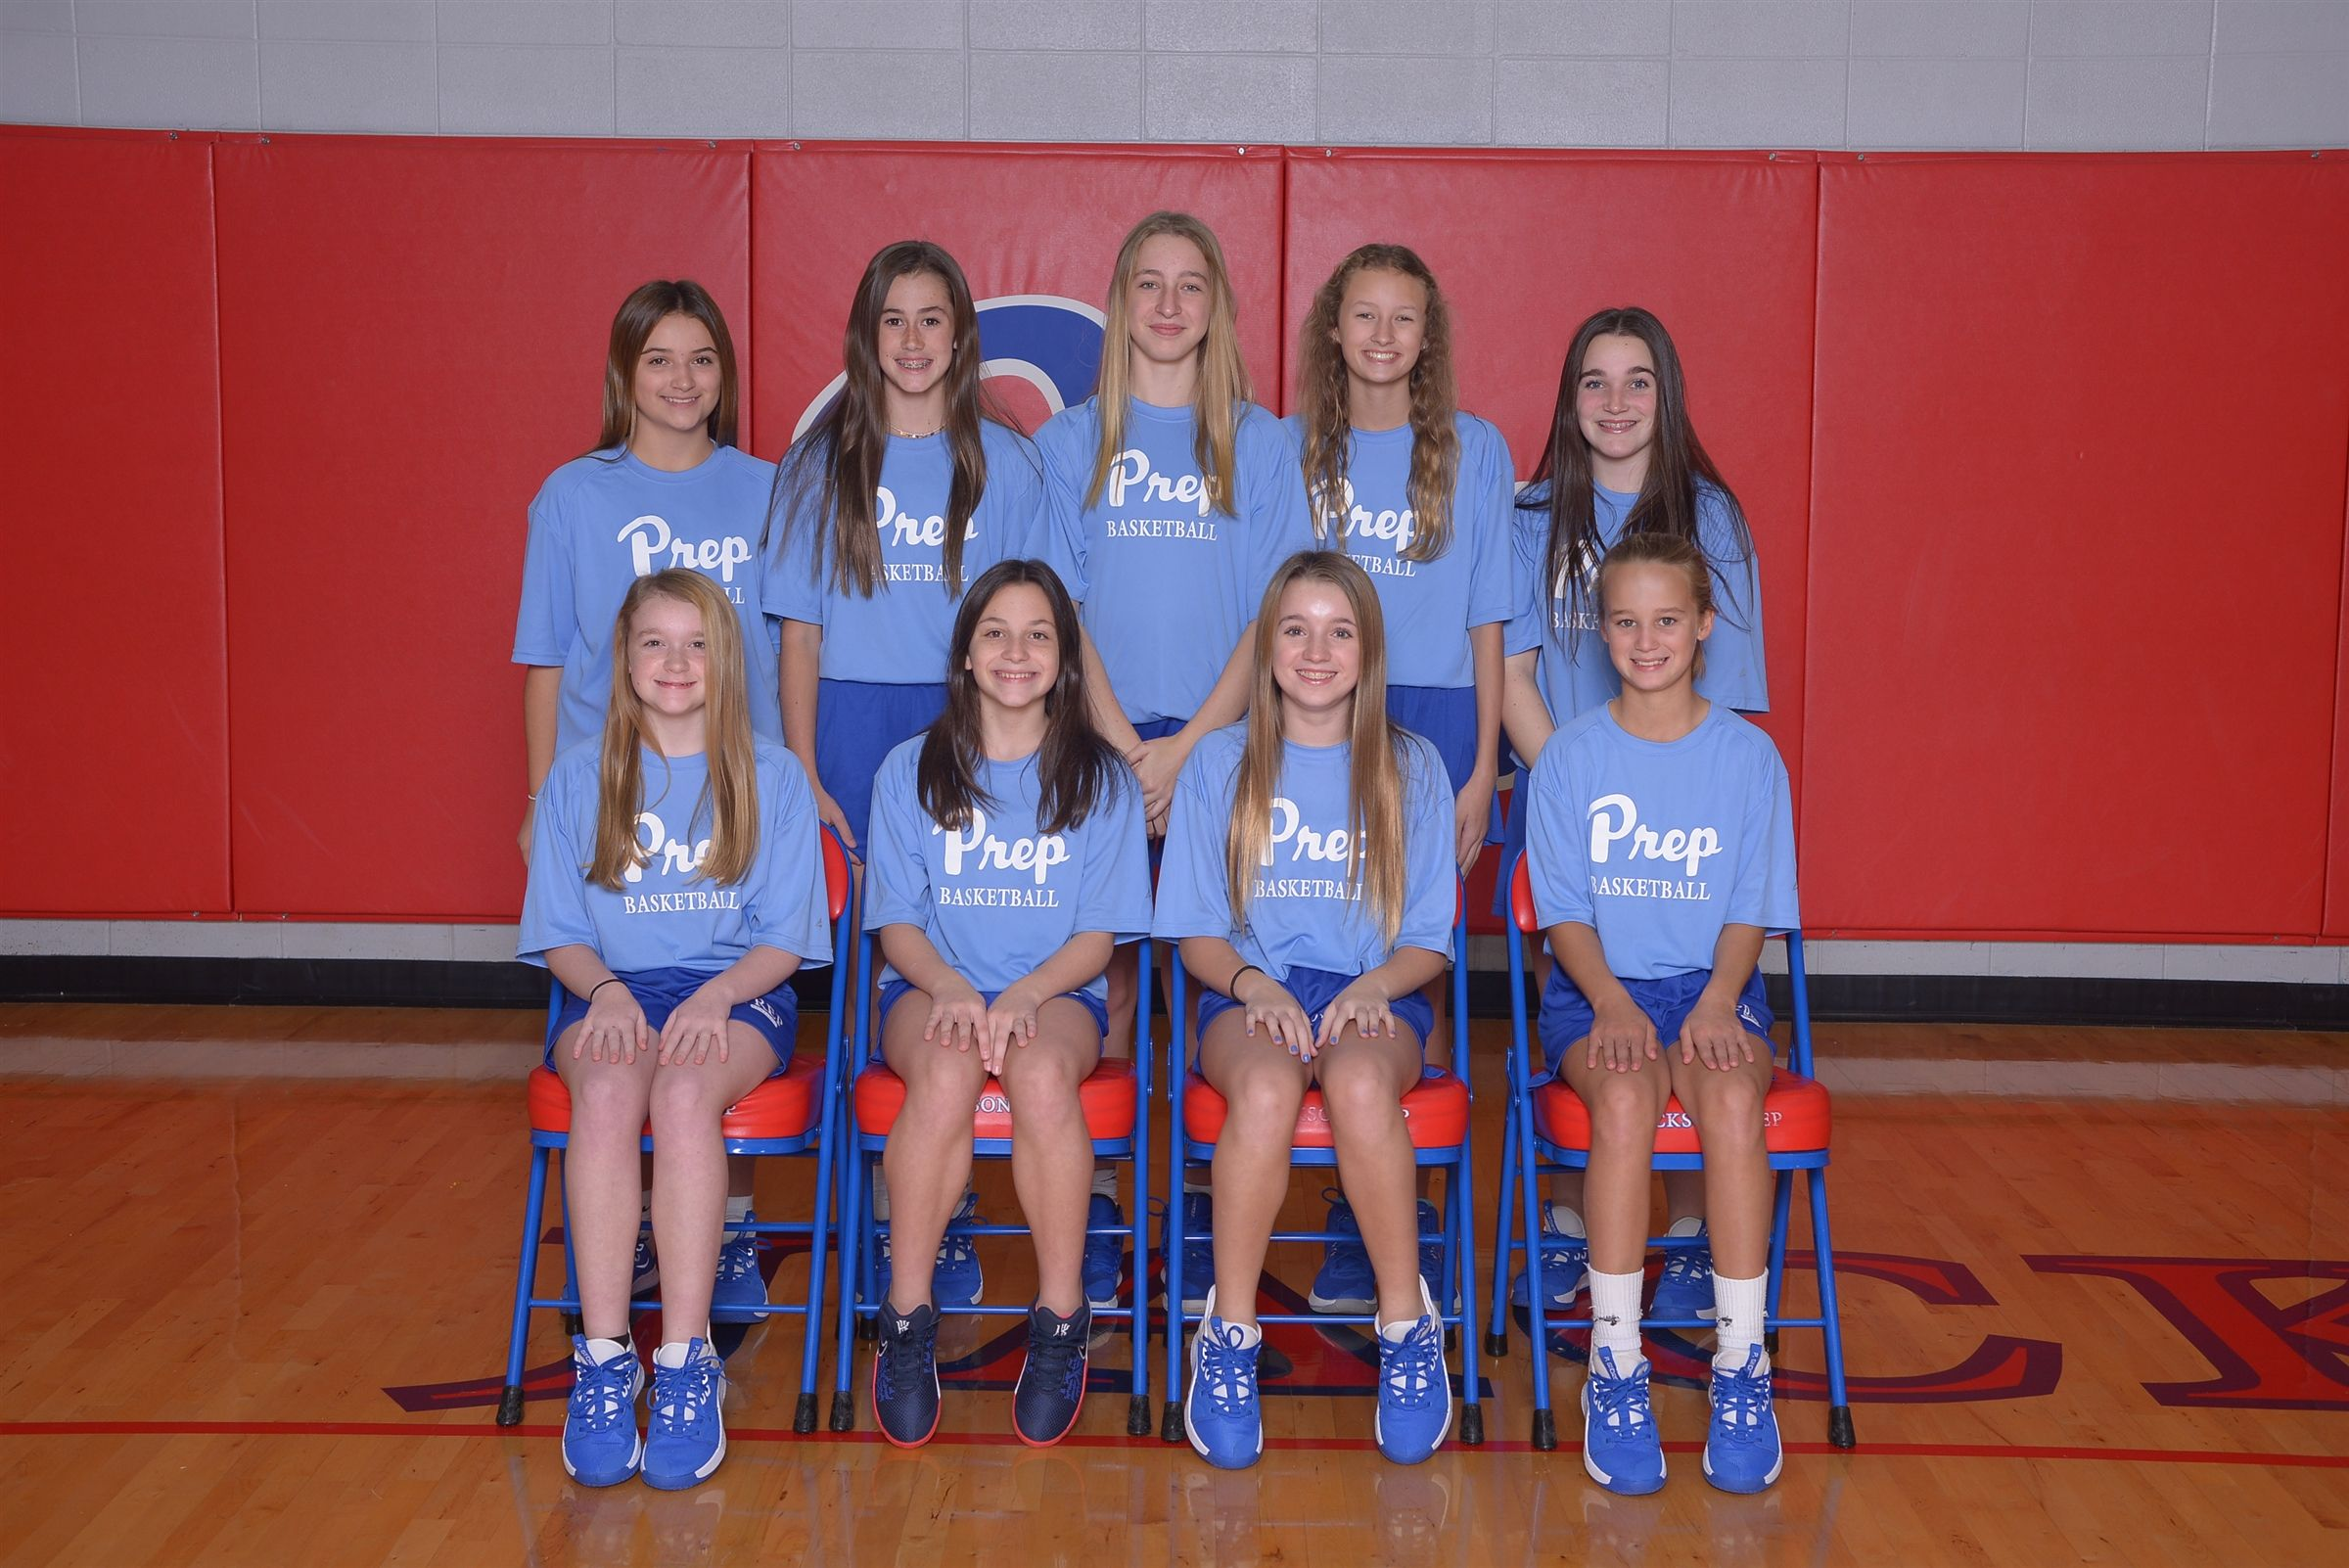 Back row (l to r): Alex Williams, Taylor Caton, Halie Sutton, Bennett Carter, Rosie Ward  Front row (l to r): Meredith Kalahar, Lilla Watson, Dendy Hogan, Lucy Cook (not pictured: Emmy Craddock)